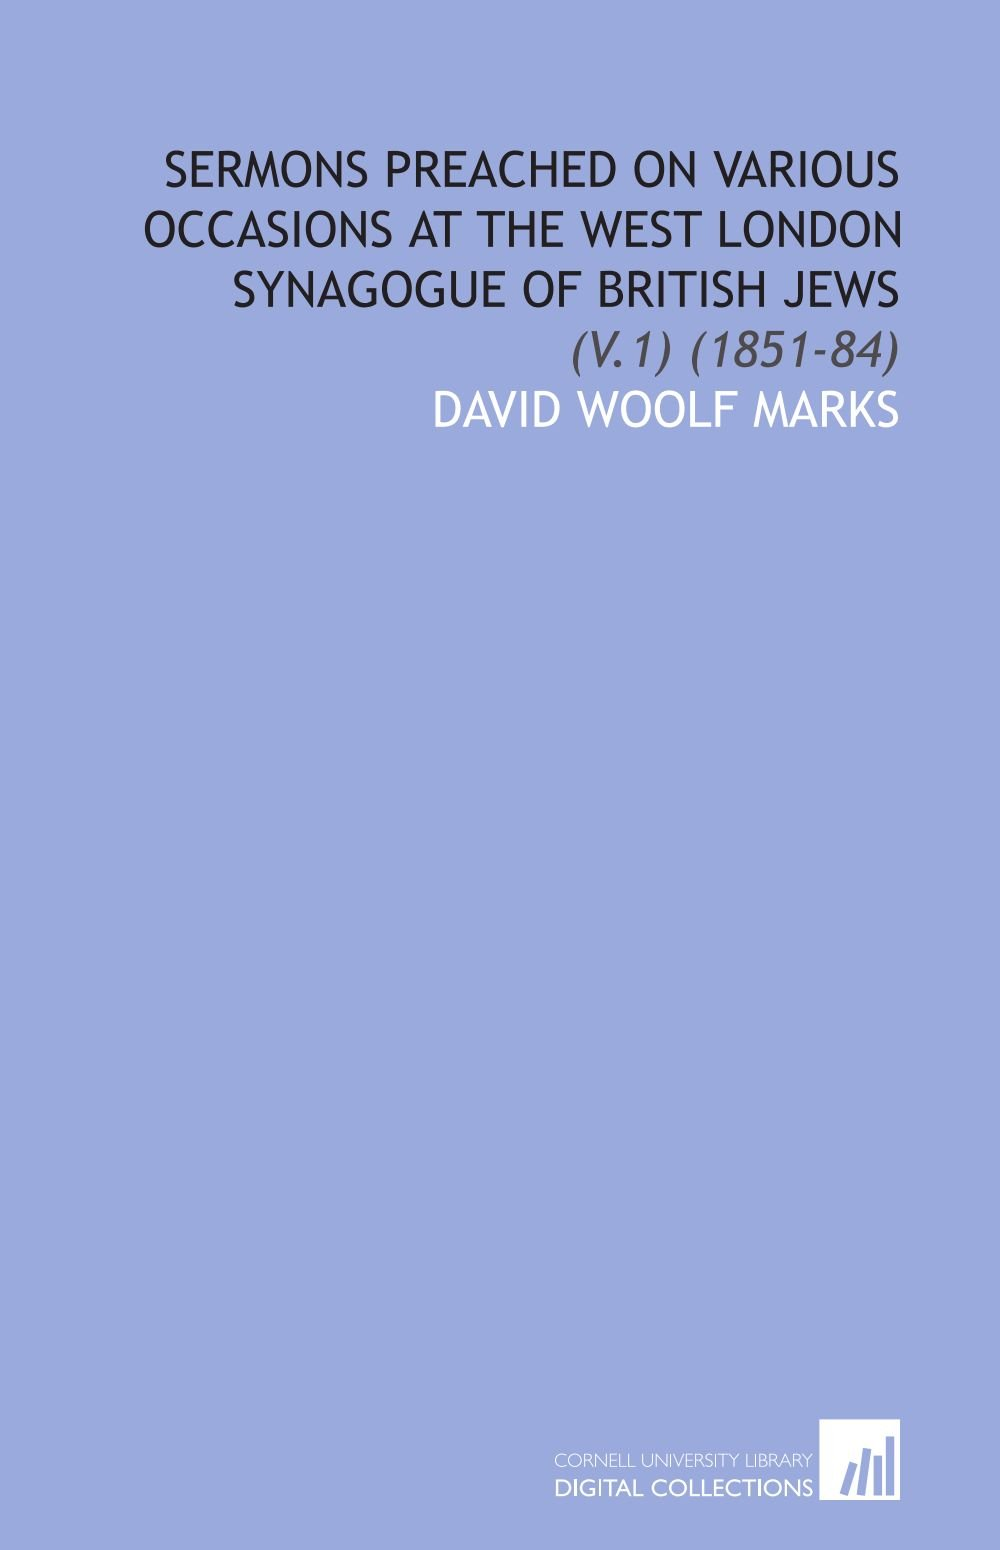 Read Online Sermons Preached on Various Occasions at the West London Synagogue of British Jews: (V.1) (1851-84) PDF